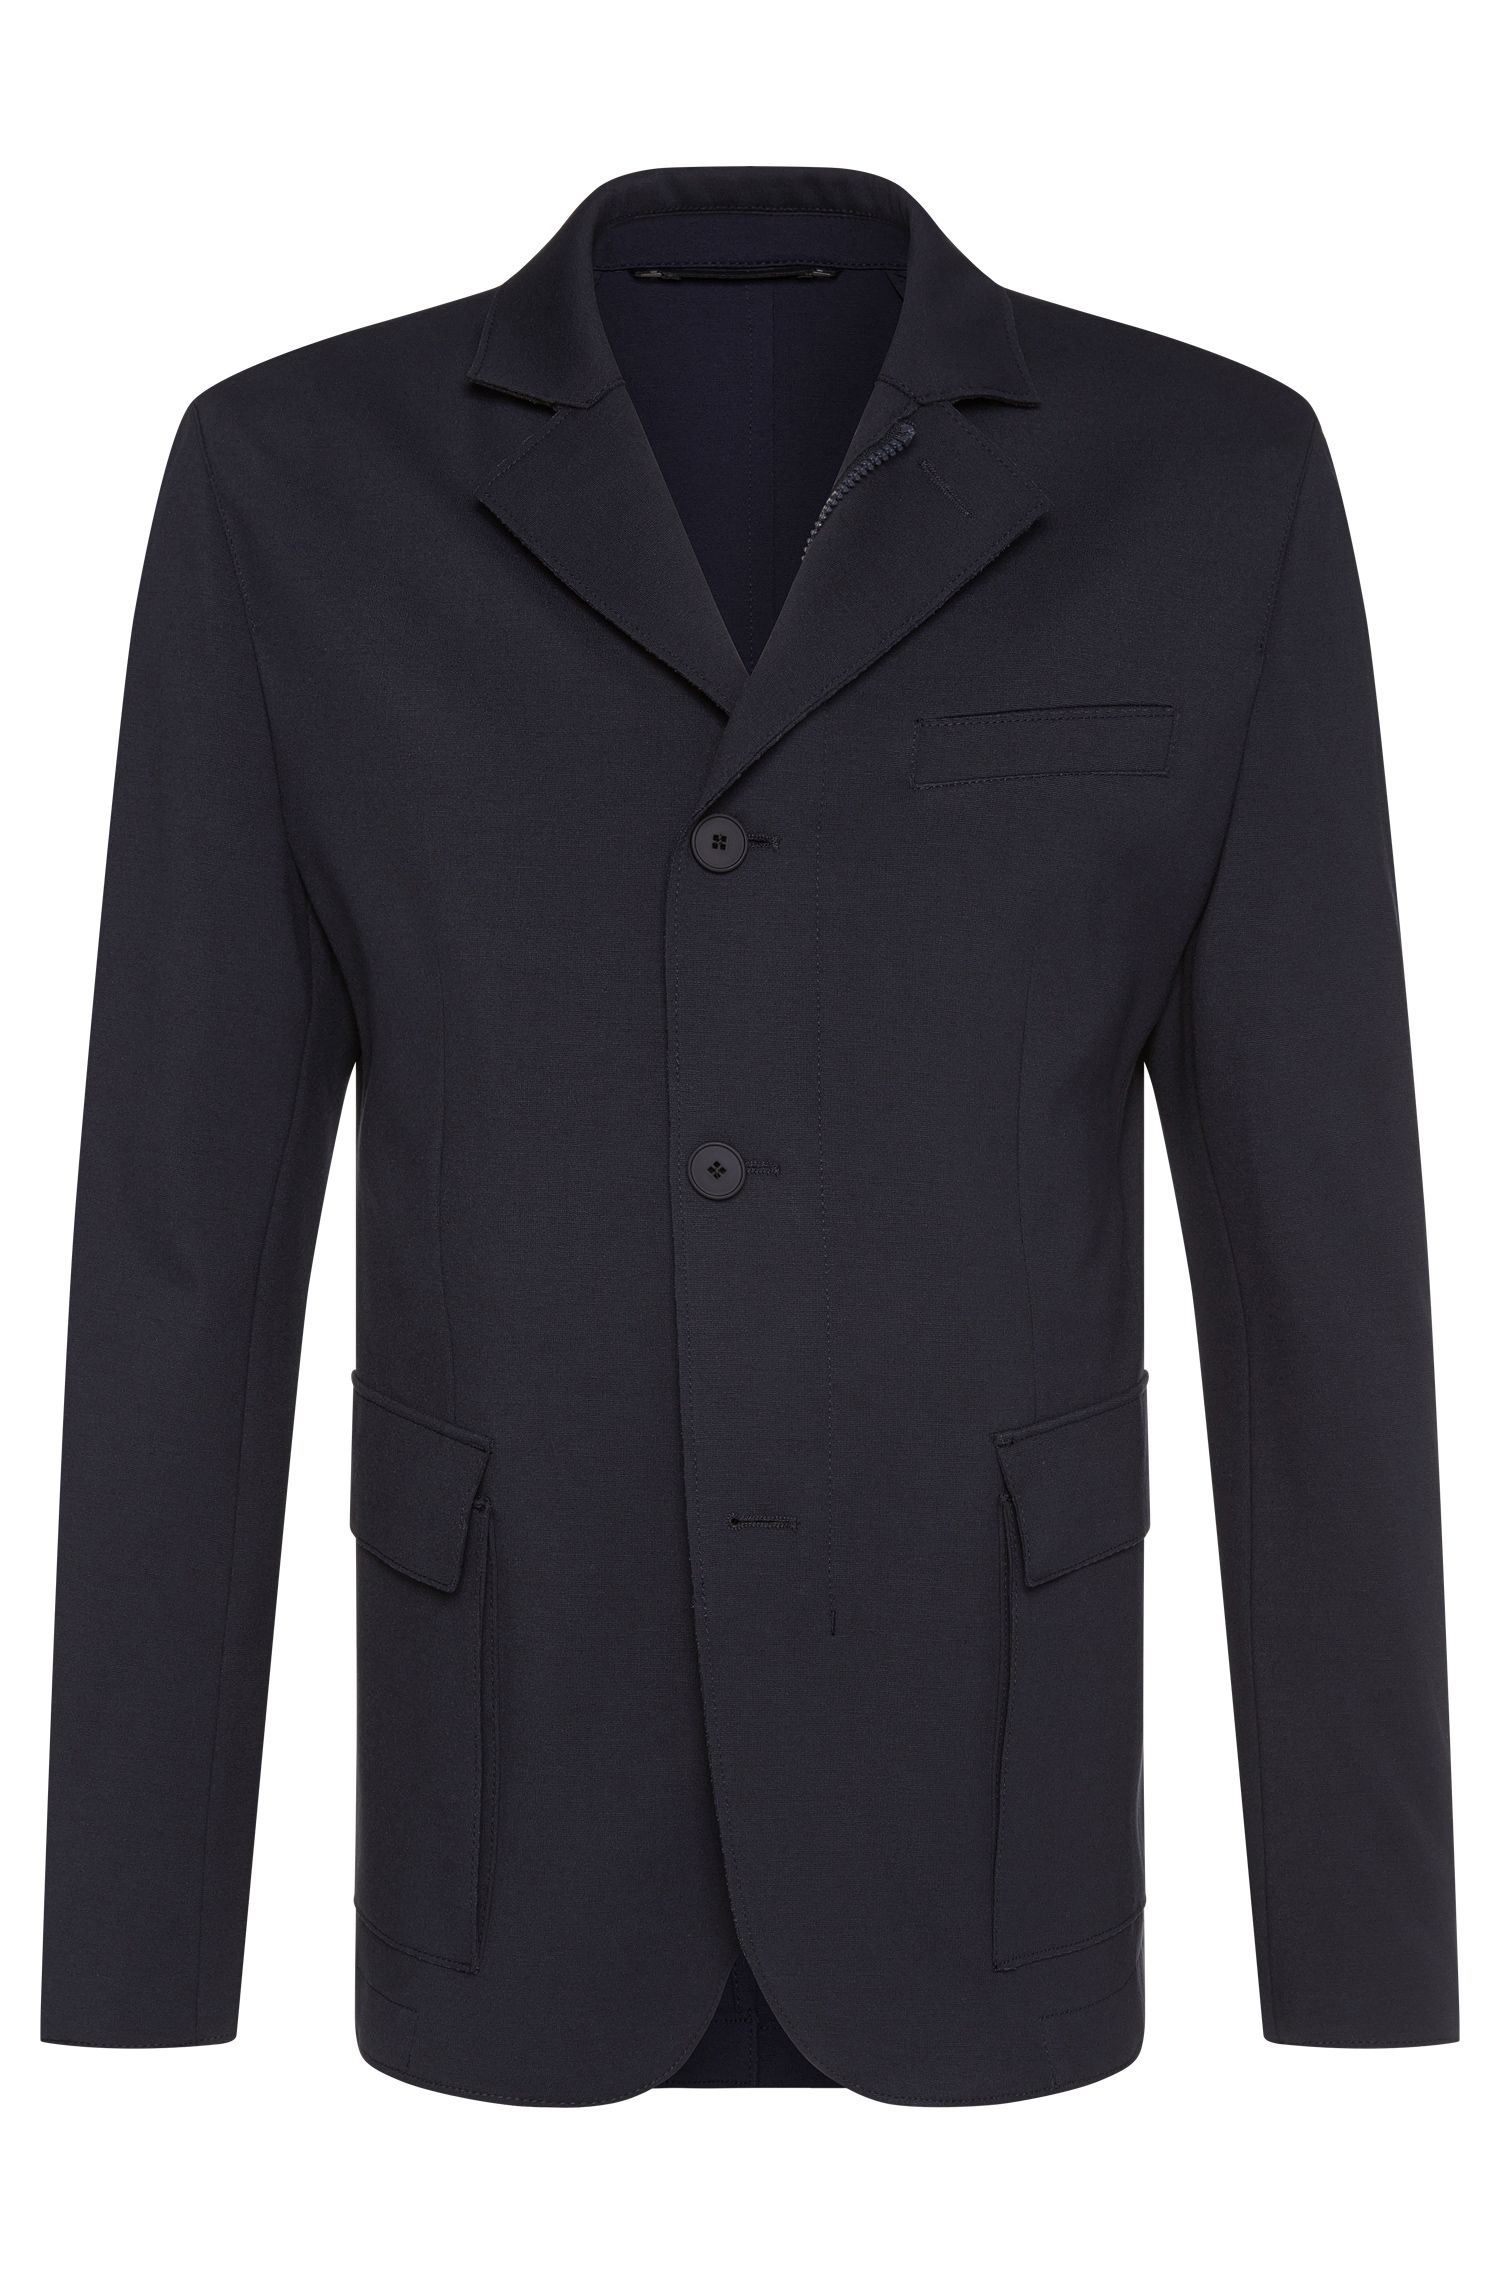 Veste de costume Slim Fit Tailored en viscose mélangée extensible, fermée par un zip : « T-Niam »